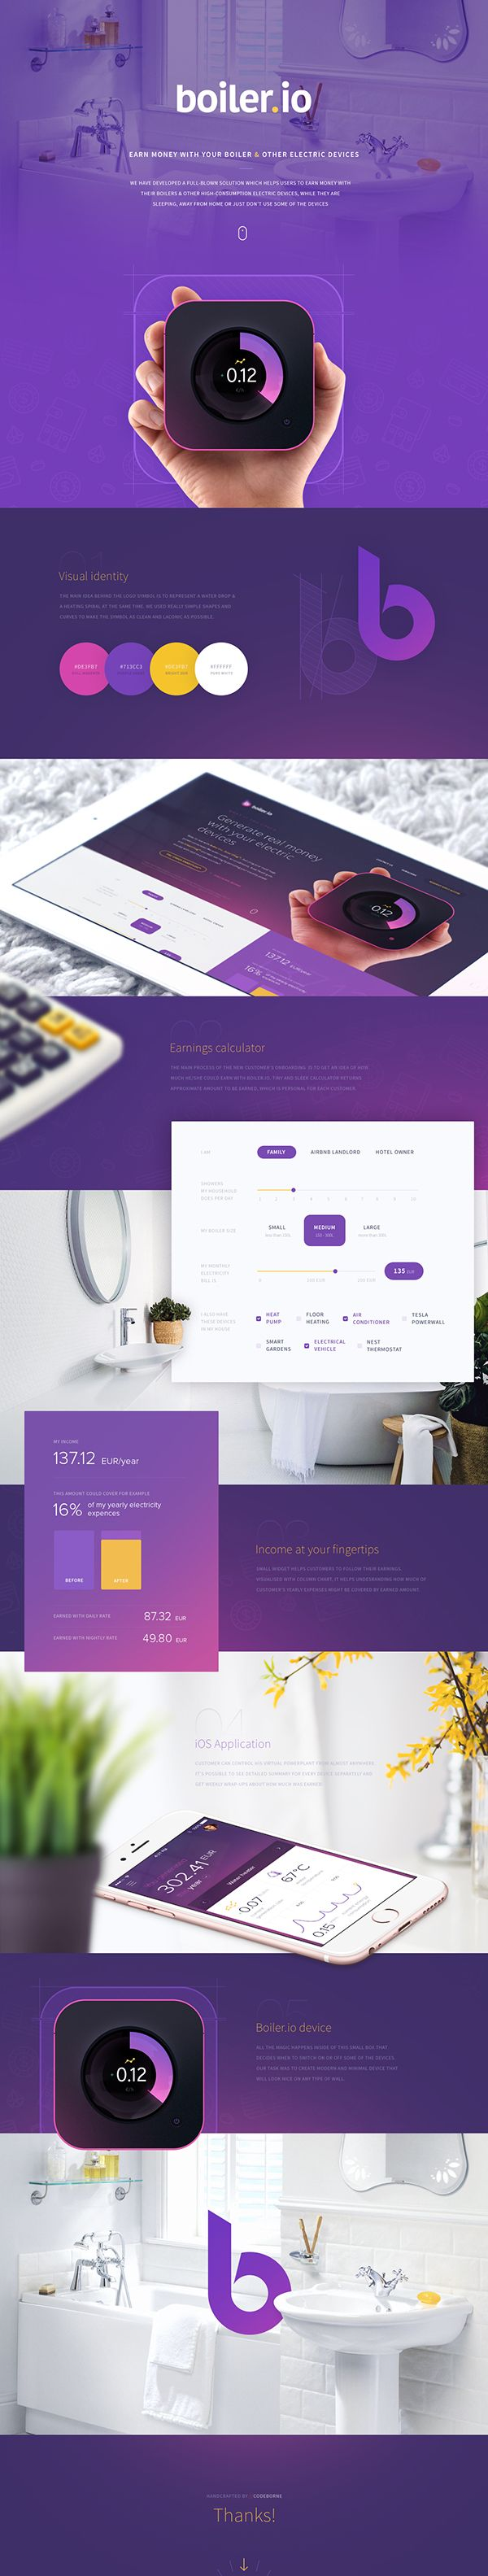 Best 25+ Web design proposal ideas on Pinterest | Ui design, Grid ...